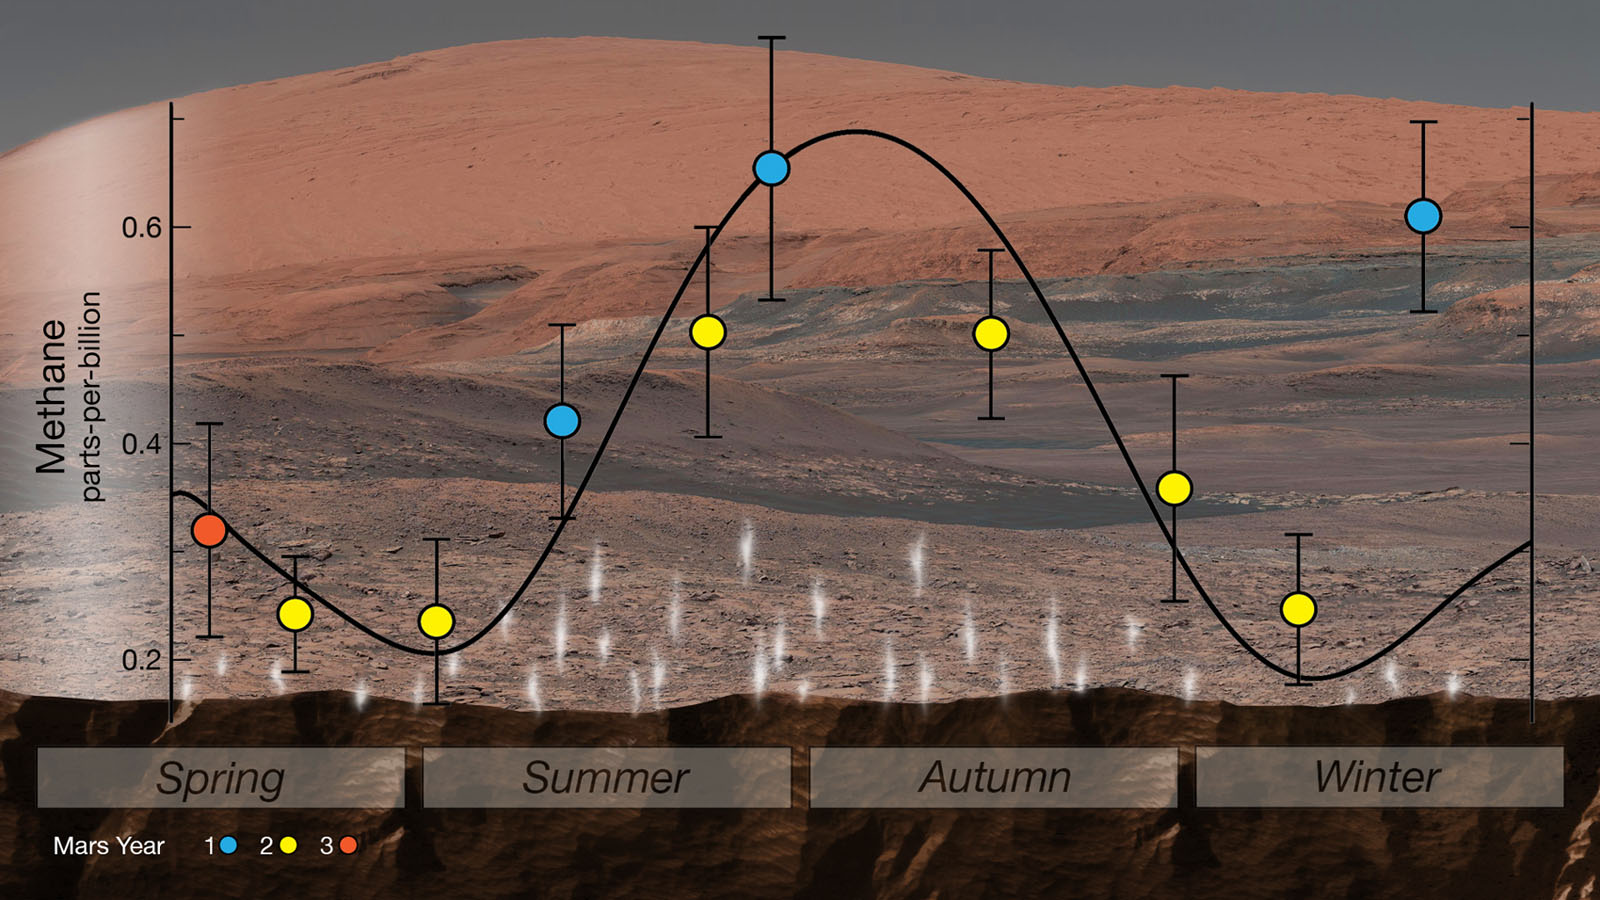 NASA's Curiosity rover used its Sample Analysis at Mars to detect seasonal changes in atmospheric methane in Gale Crater. The methane signal has been observed for nearly three Martian years (nearly six Earth years), peaking each summer.